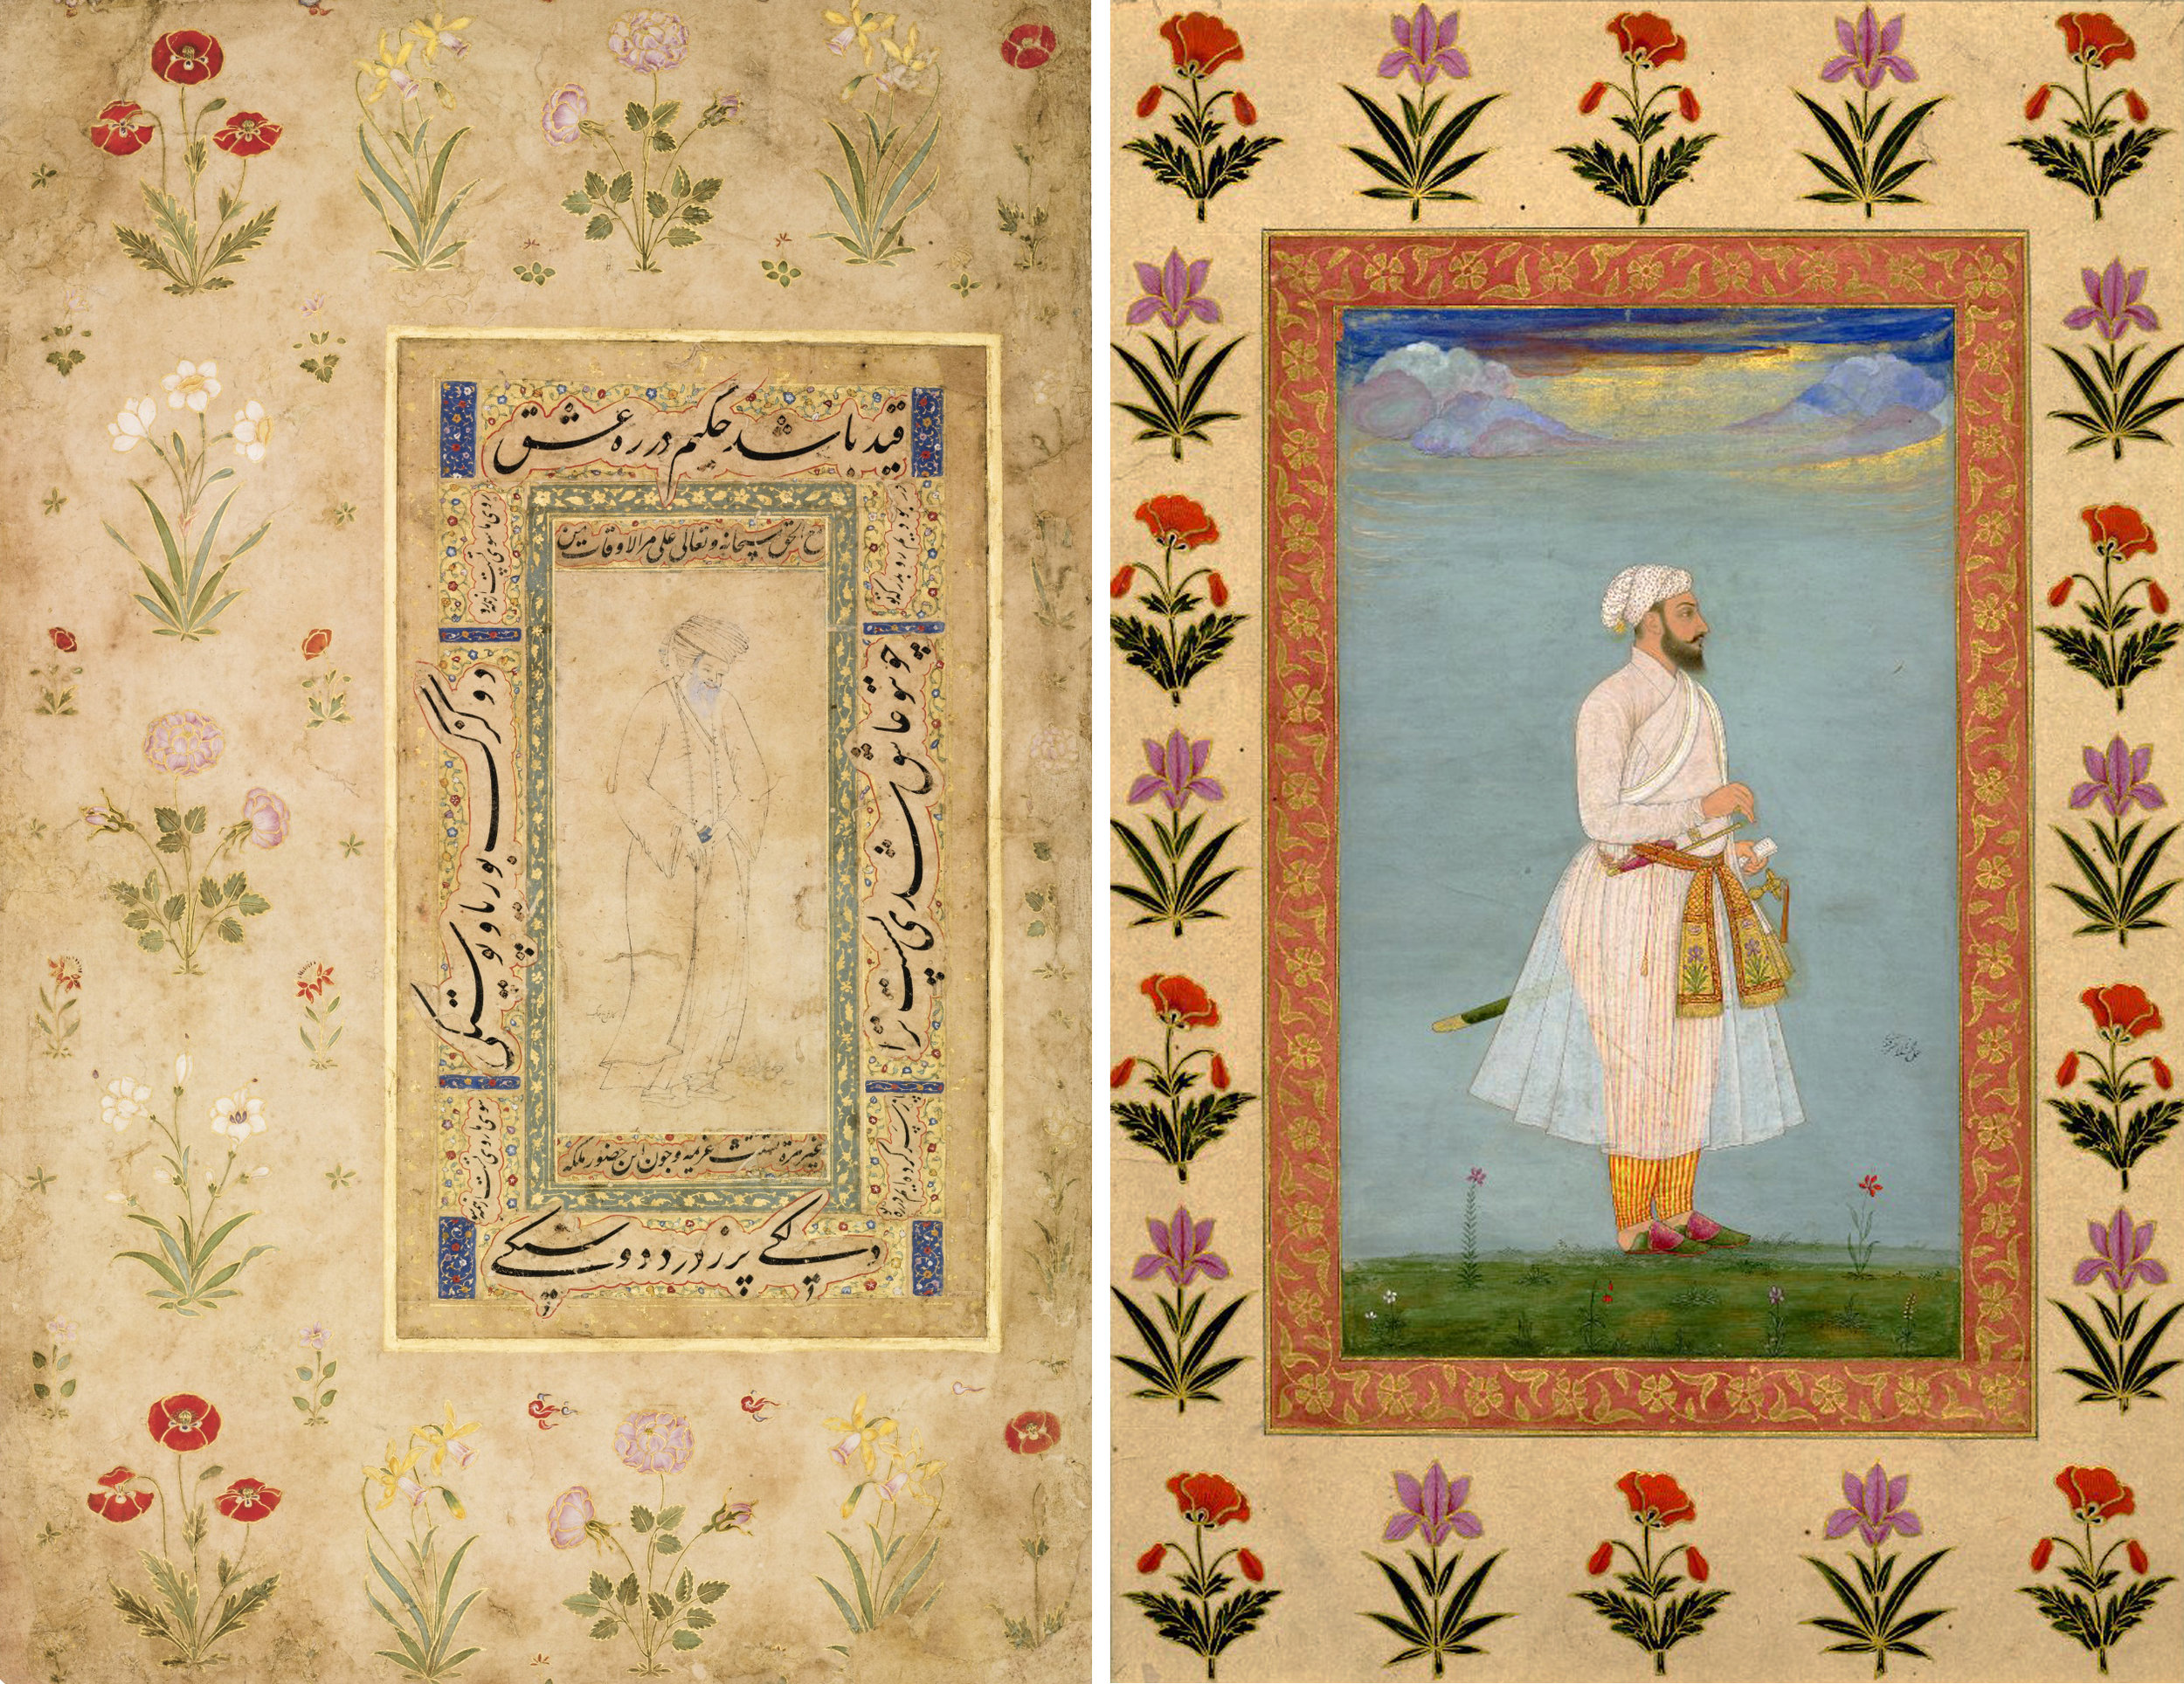 Left:Page with a Safavid drawing from an album made for Emperor Shah Jahan, Persia and India, circa 1625-50, image courtesy of Sotheby's.